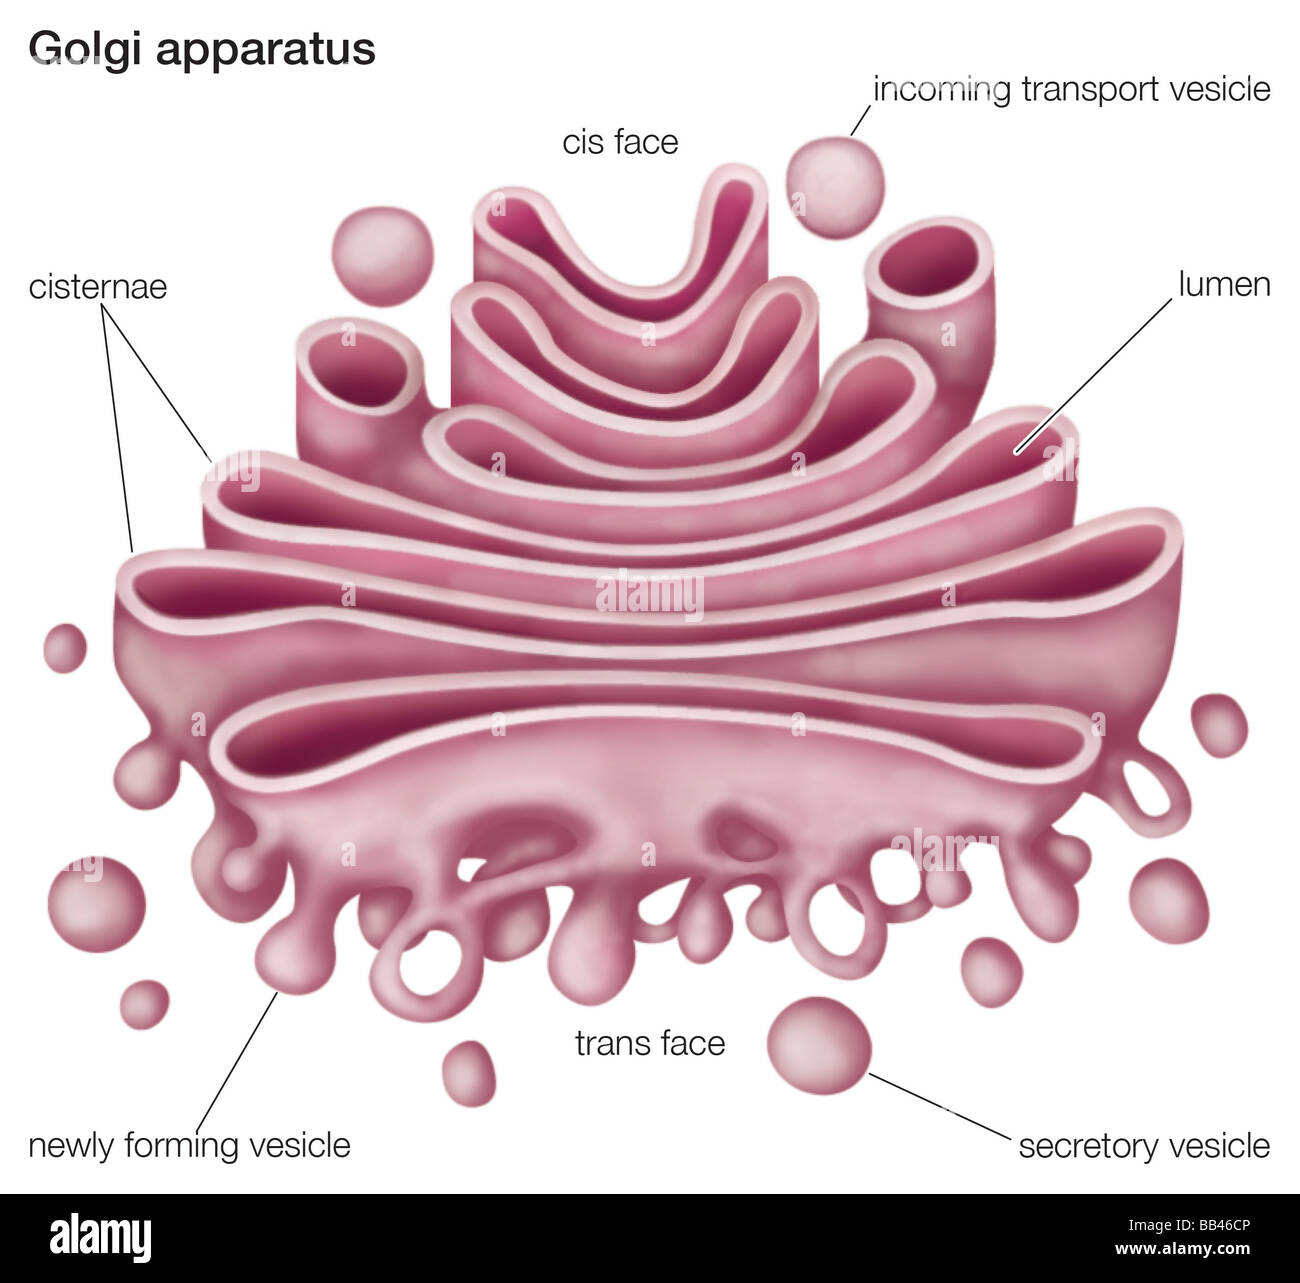 golgi apparatus structure diagram 2007 kawasaki mule 3010 wiring the or complex plays an important role